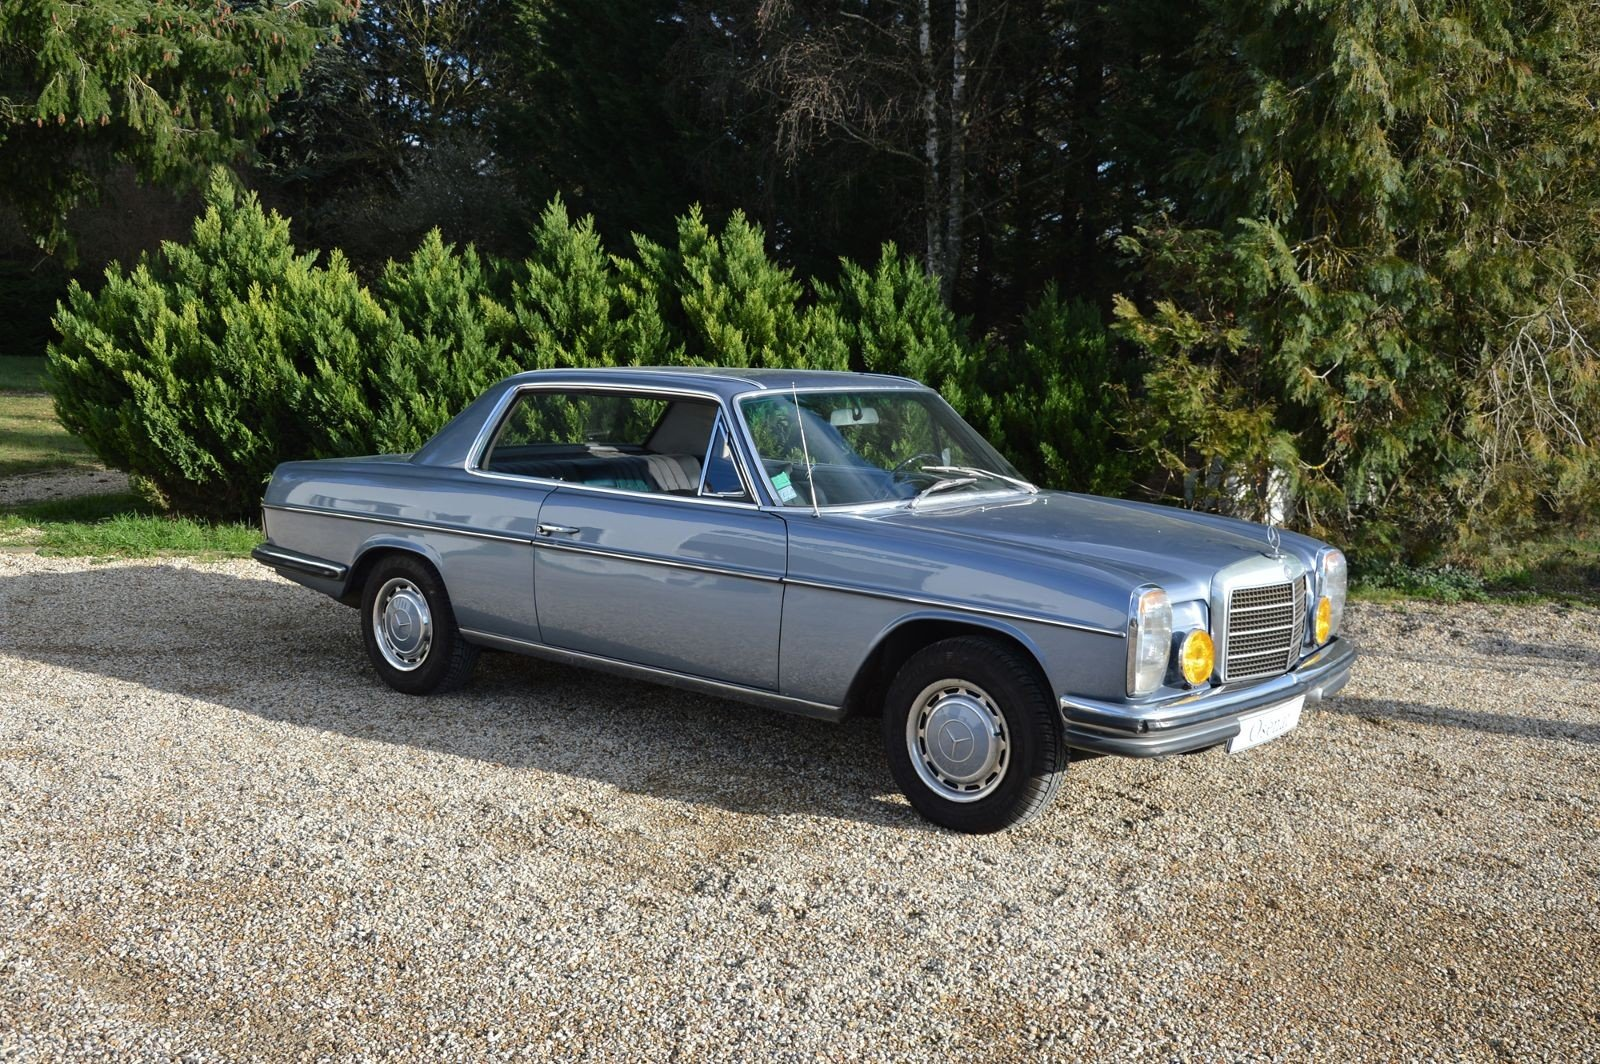 1973 Mercedes Benz 280 CE For Sale (picture 1 of 2)